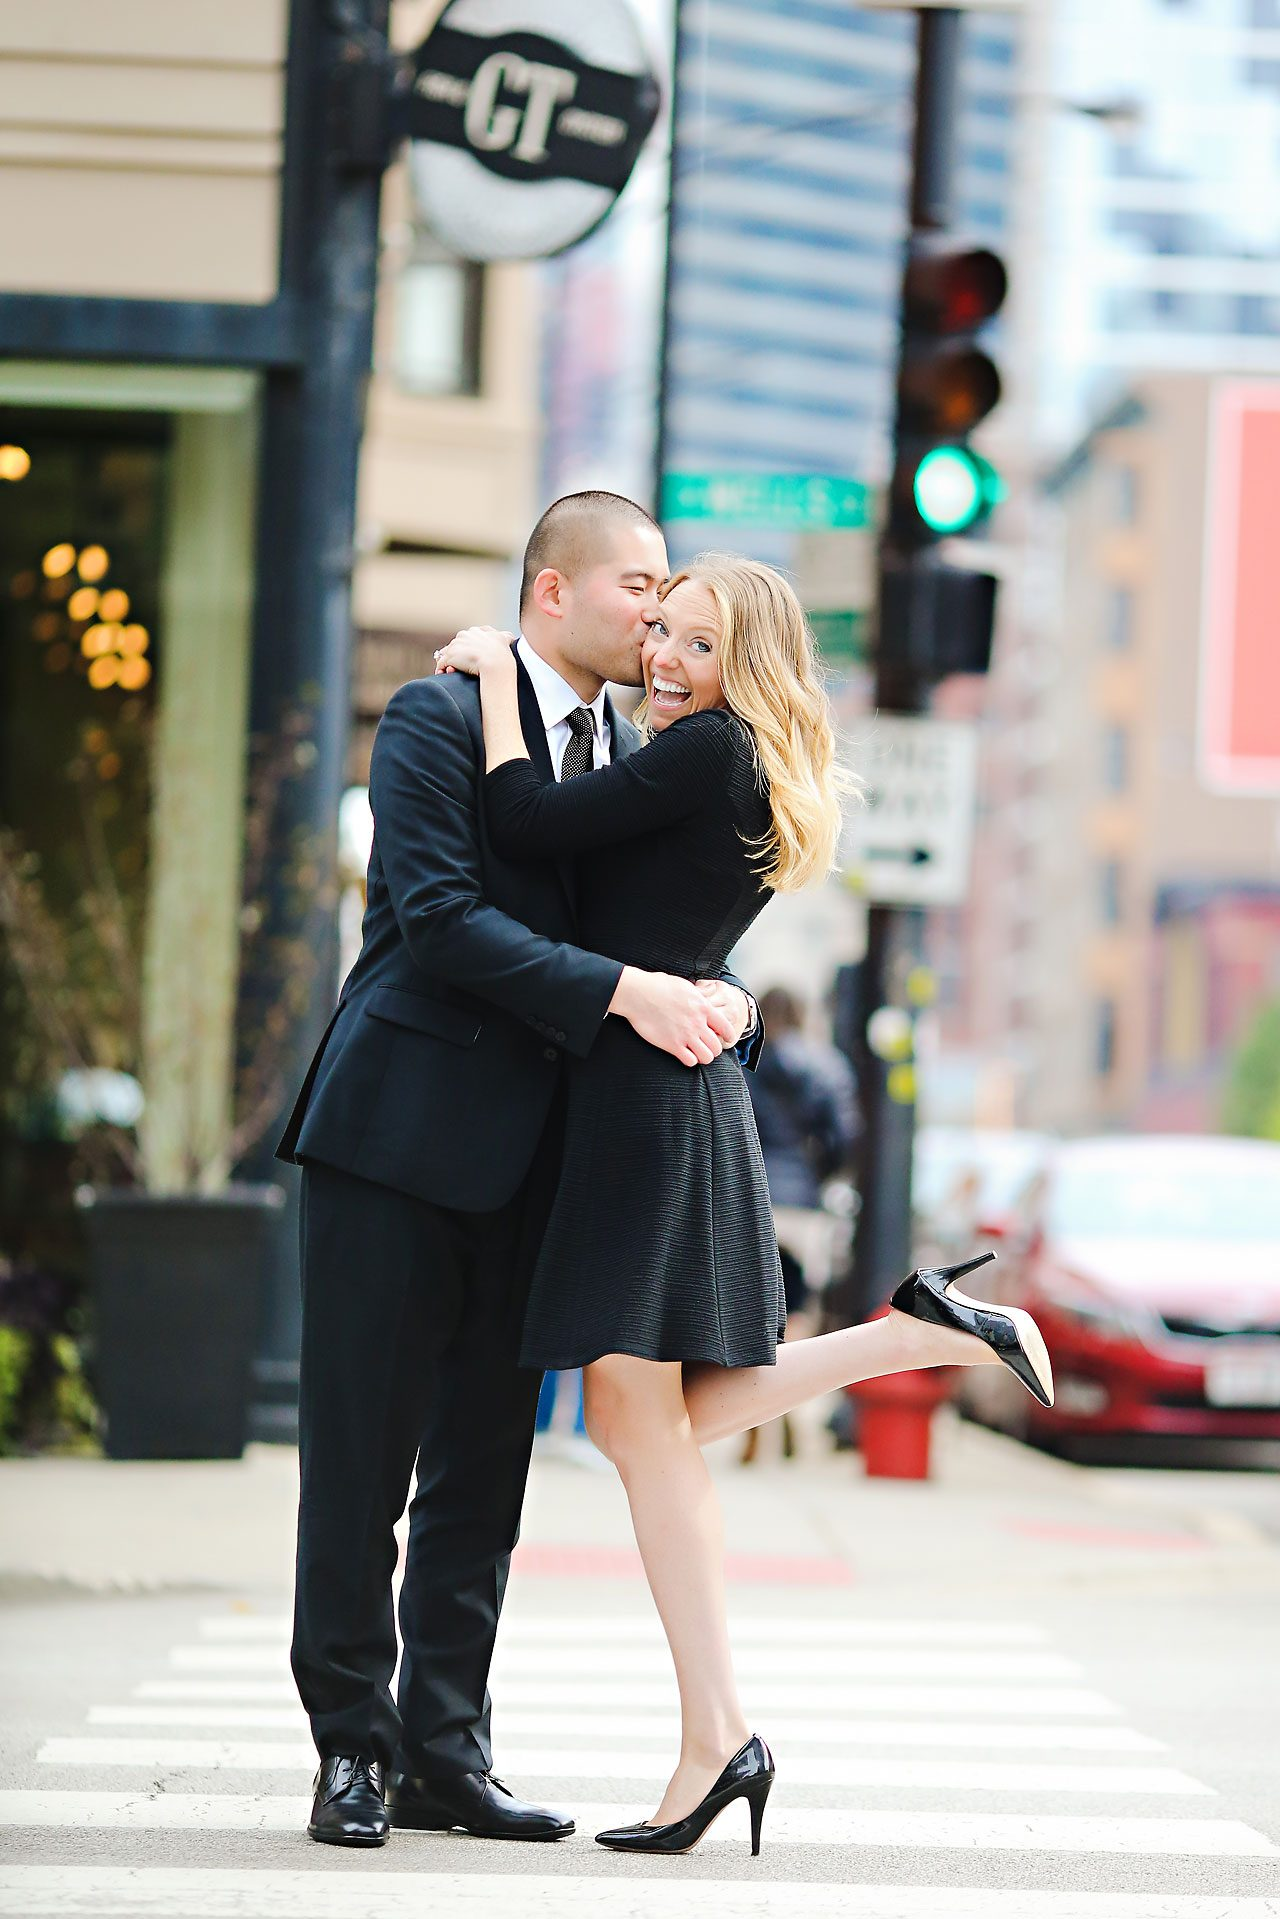 mallory wayne chicago engagement session 054